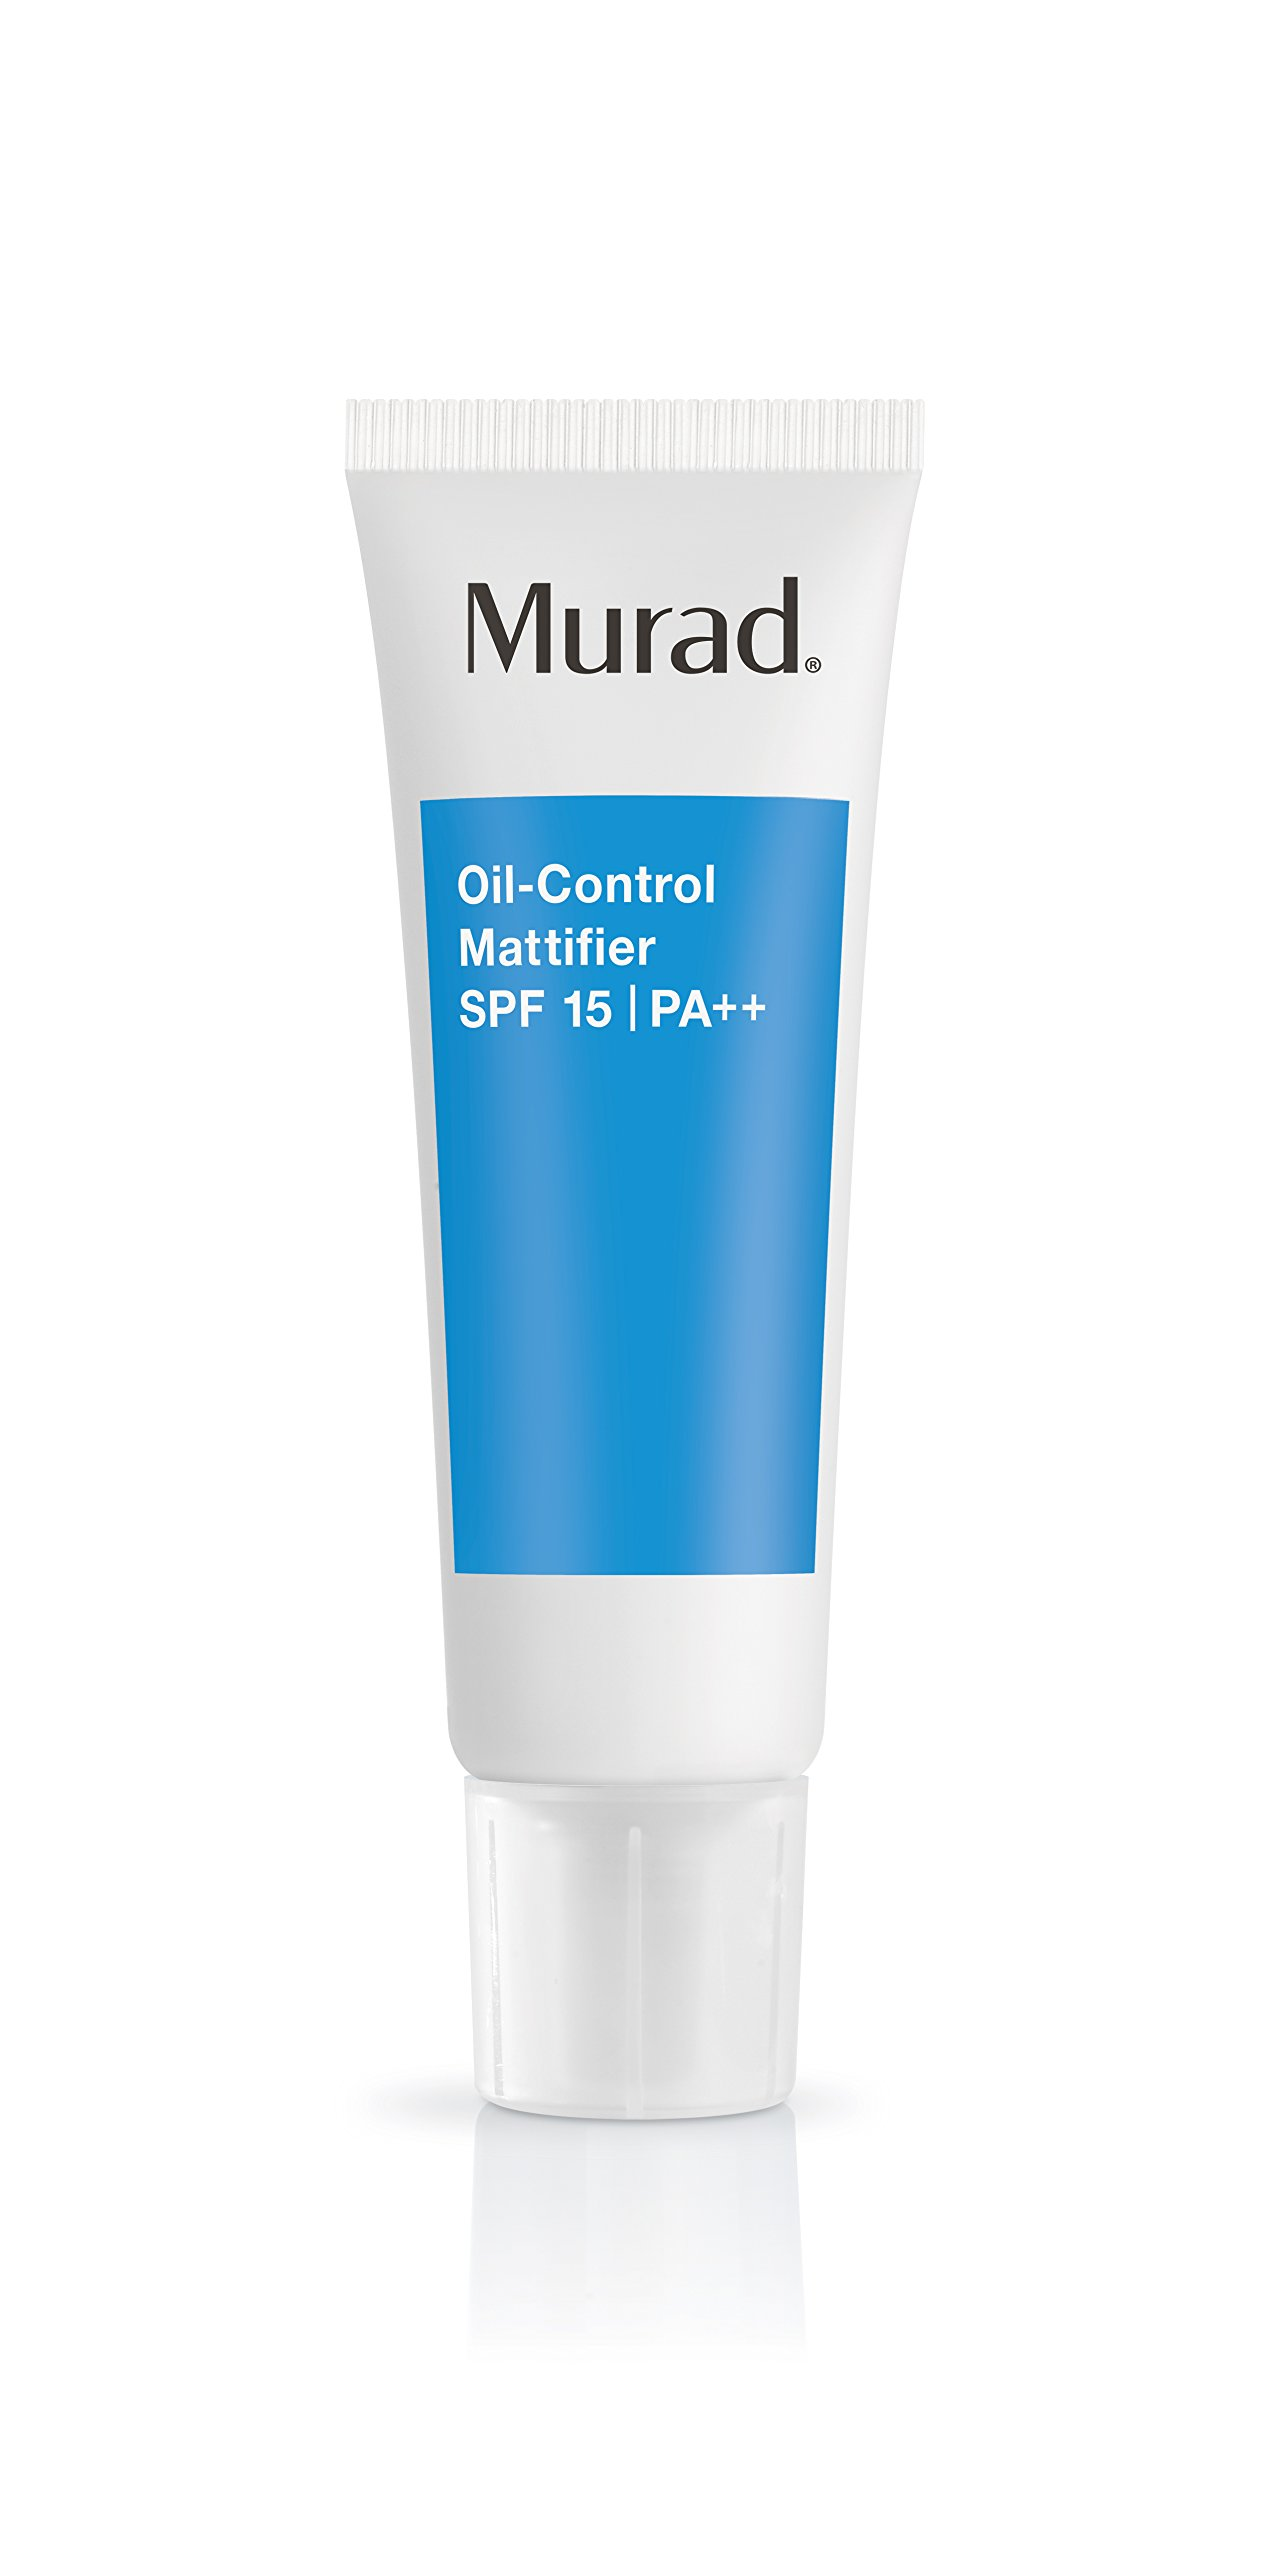 Murad Oil-Control Mattifier with SPF 15 PA++ - (1.7 fl oz), Provides a Long Lasting Matte Finish, Reduces Shine and Can Control Oil for Up To 8 Hours, Regulating Oil Production and Preserving Moisture by Murad